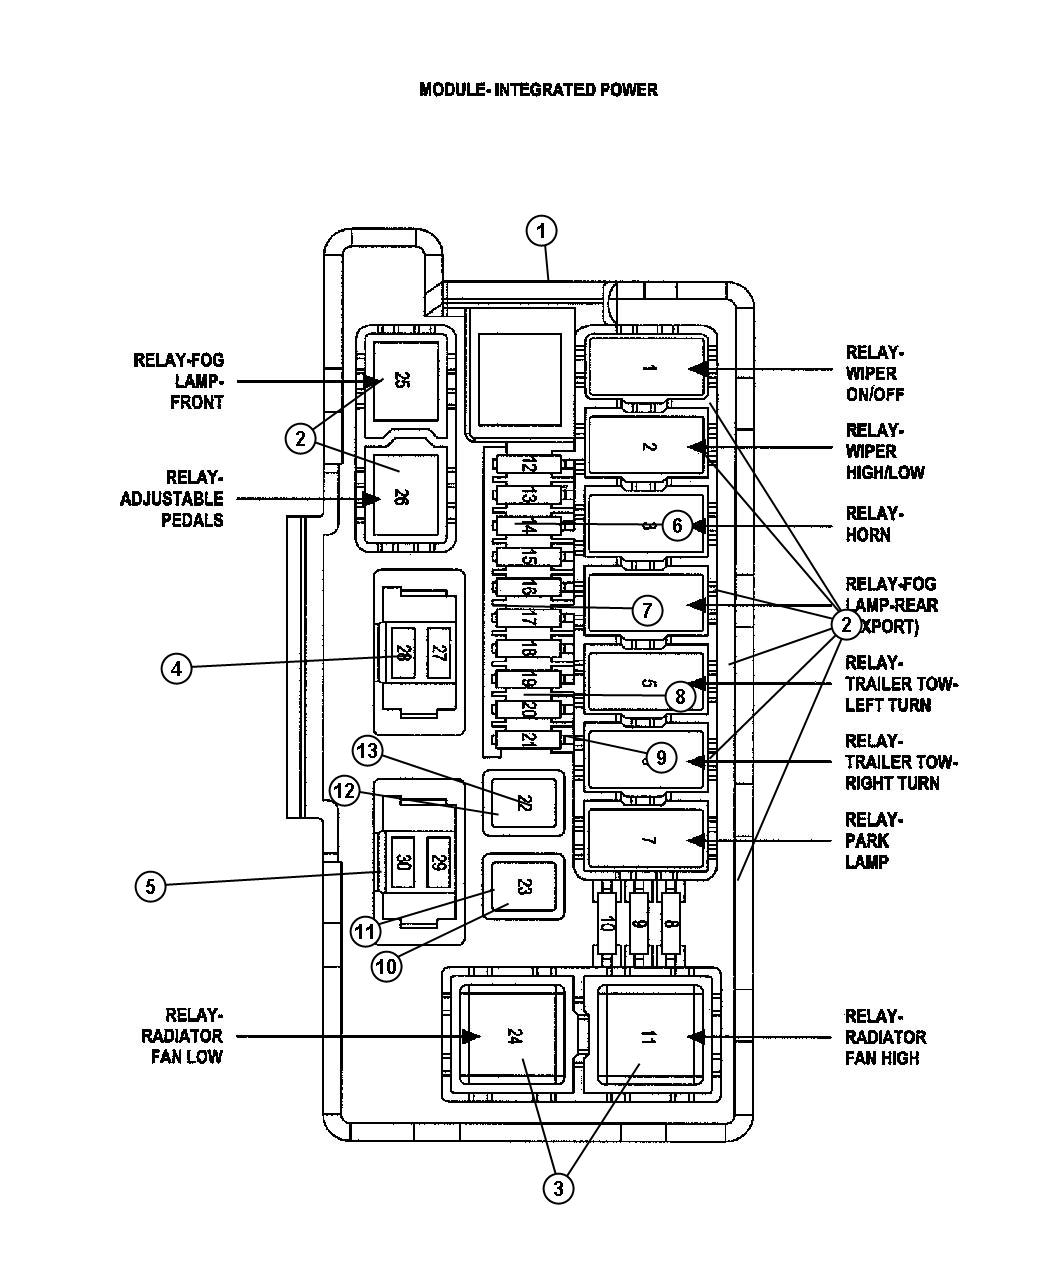 1998 jeep cherokee fuse box diagram layout with Showassembly on 98 Wrangler Radio Wiring Diagram besides Discussion T21574 ds718925 moreover Ford Econoline E350 Fuse Box Diagram in addition Discussion T20449 ds551854 further Range Rover P38 Fuse Box Diagram.